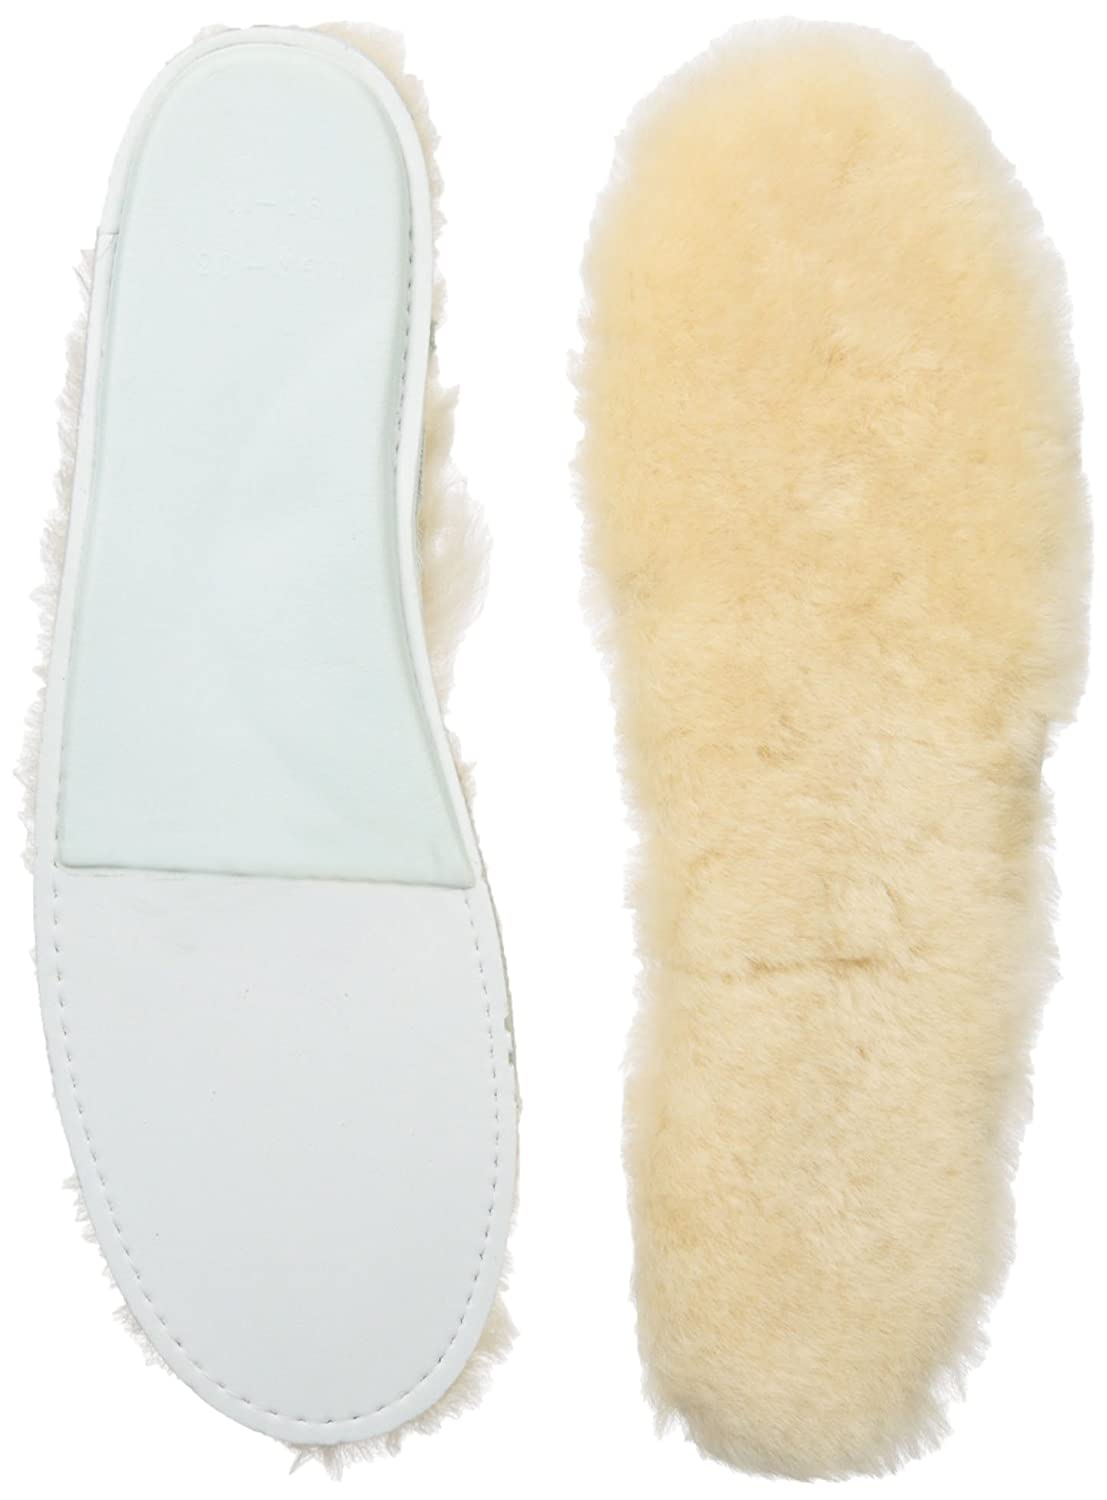 84927dc6844 UGG Accessories Women's Sheepskin Insole